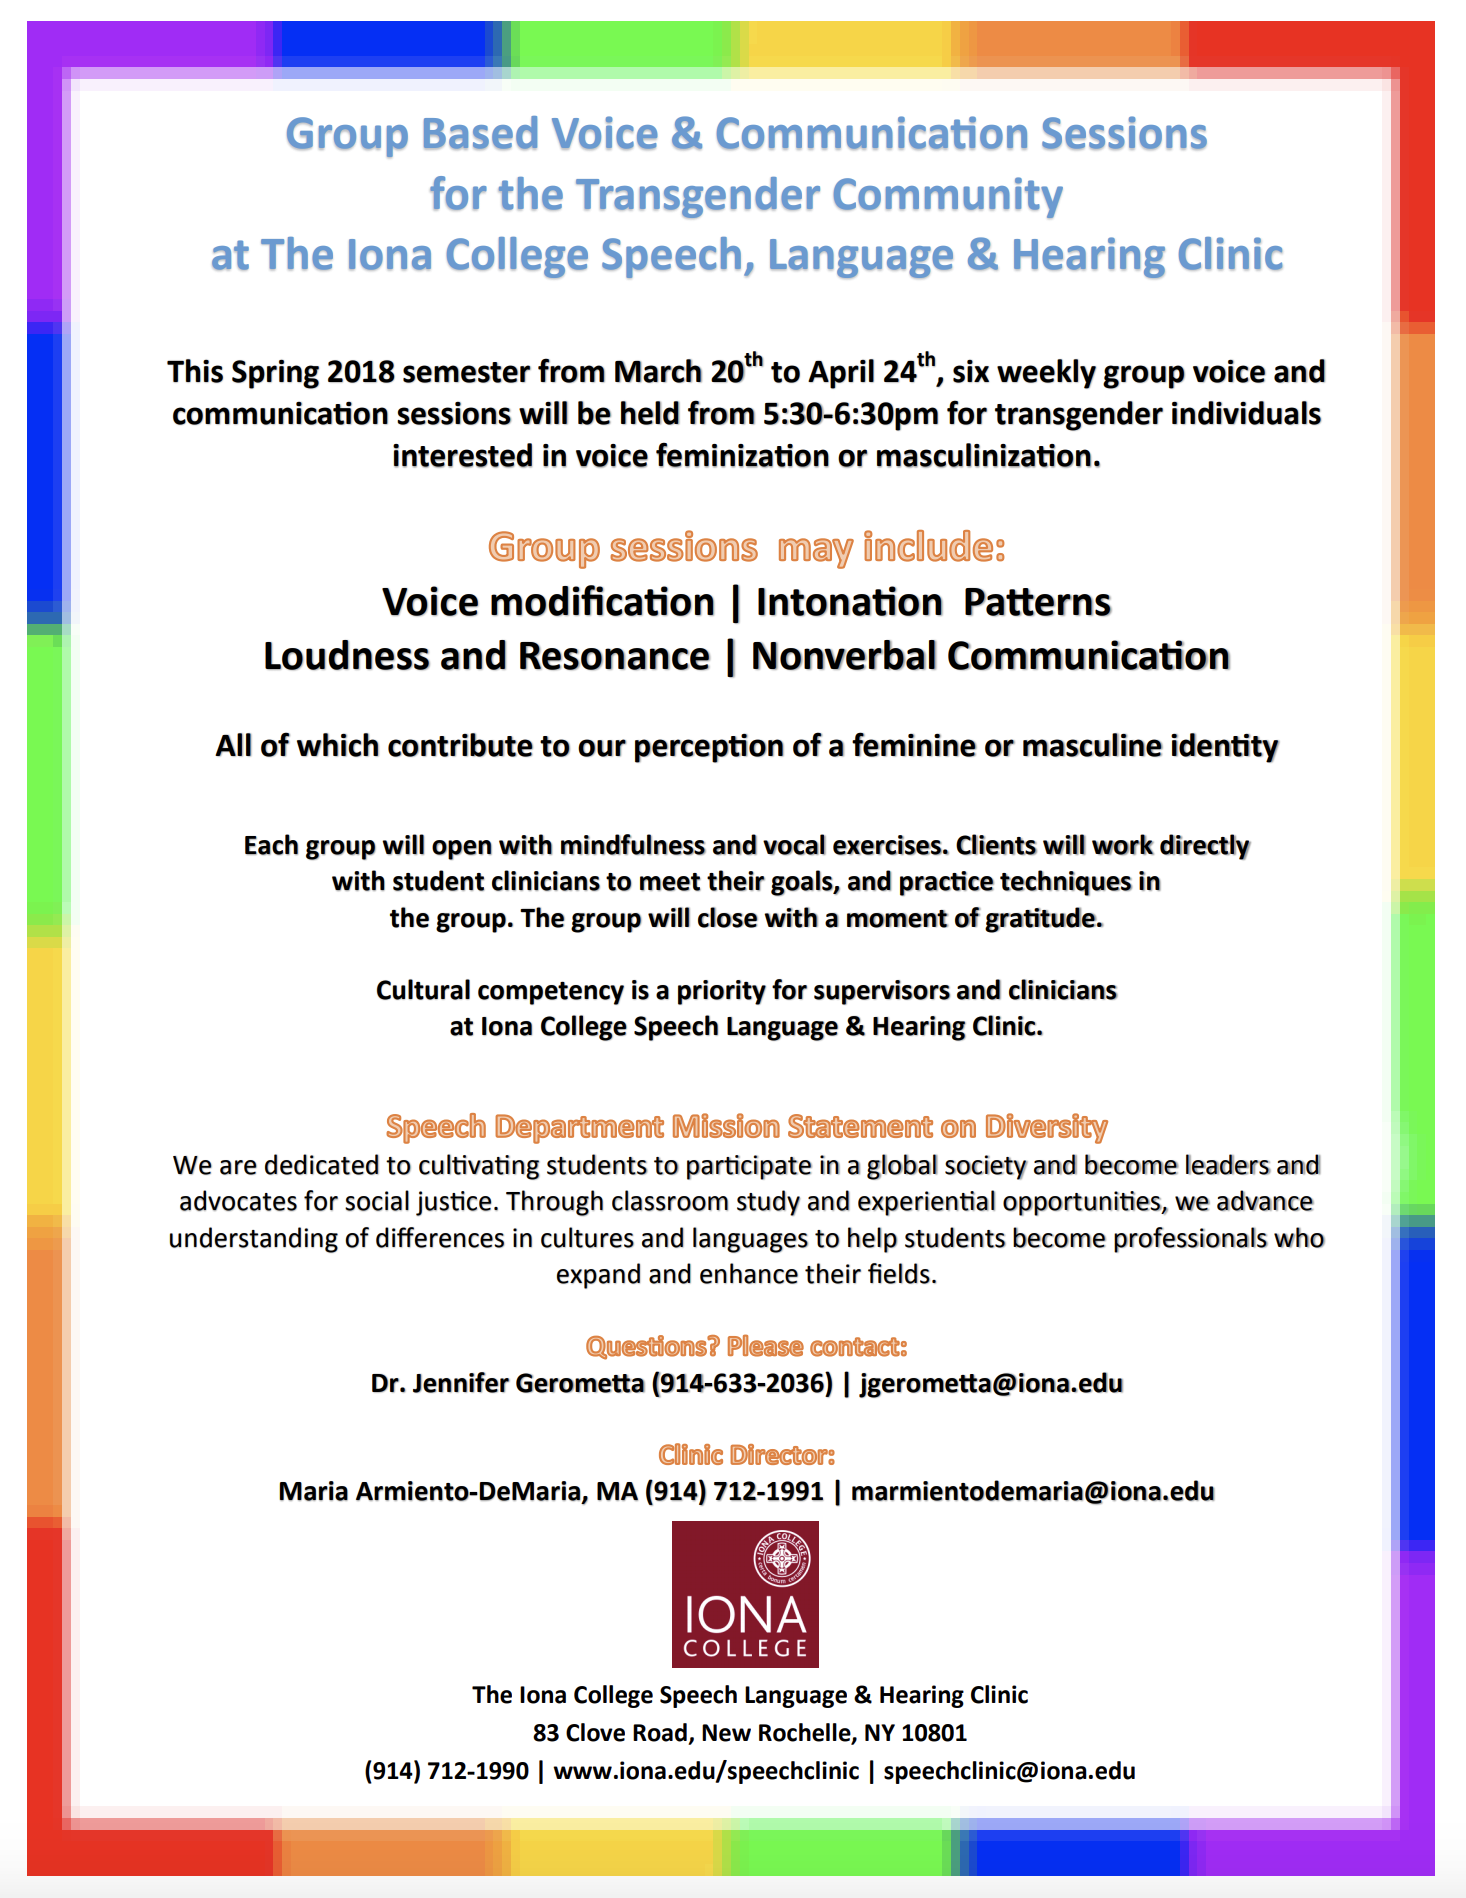 Transgender Voice & Communication Sessions at Iona College